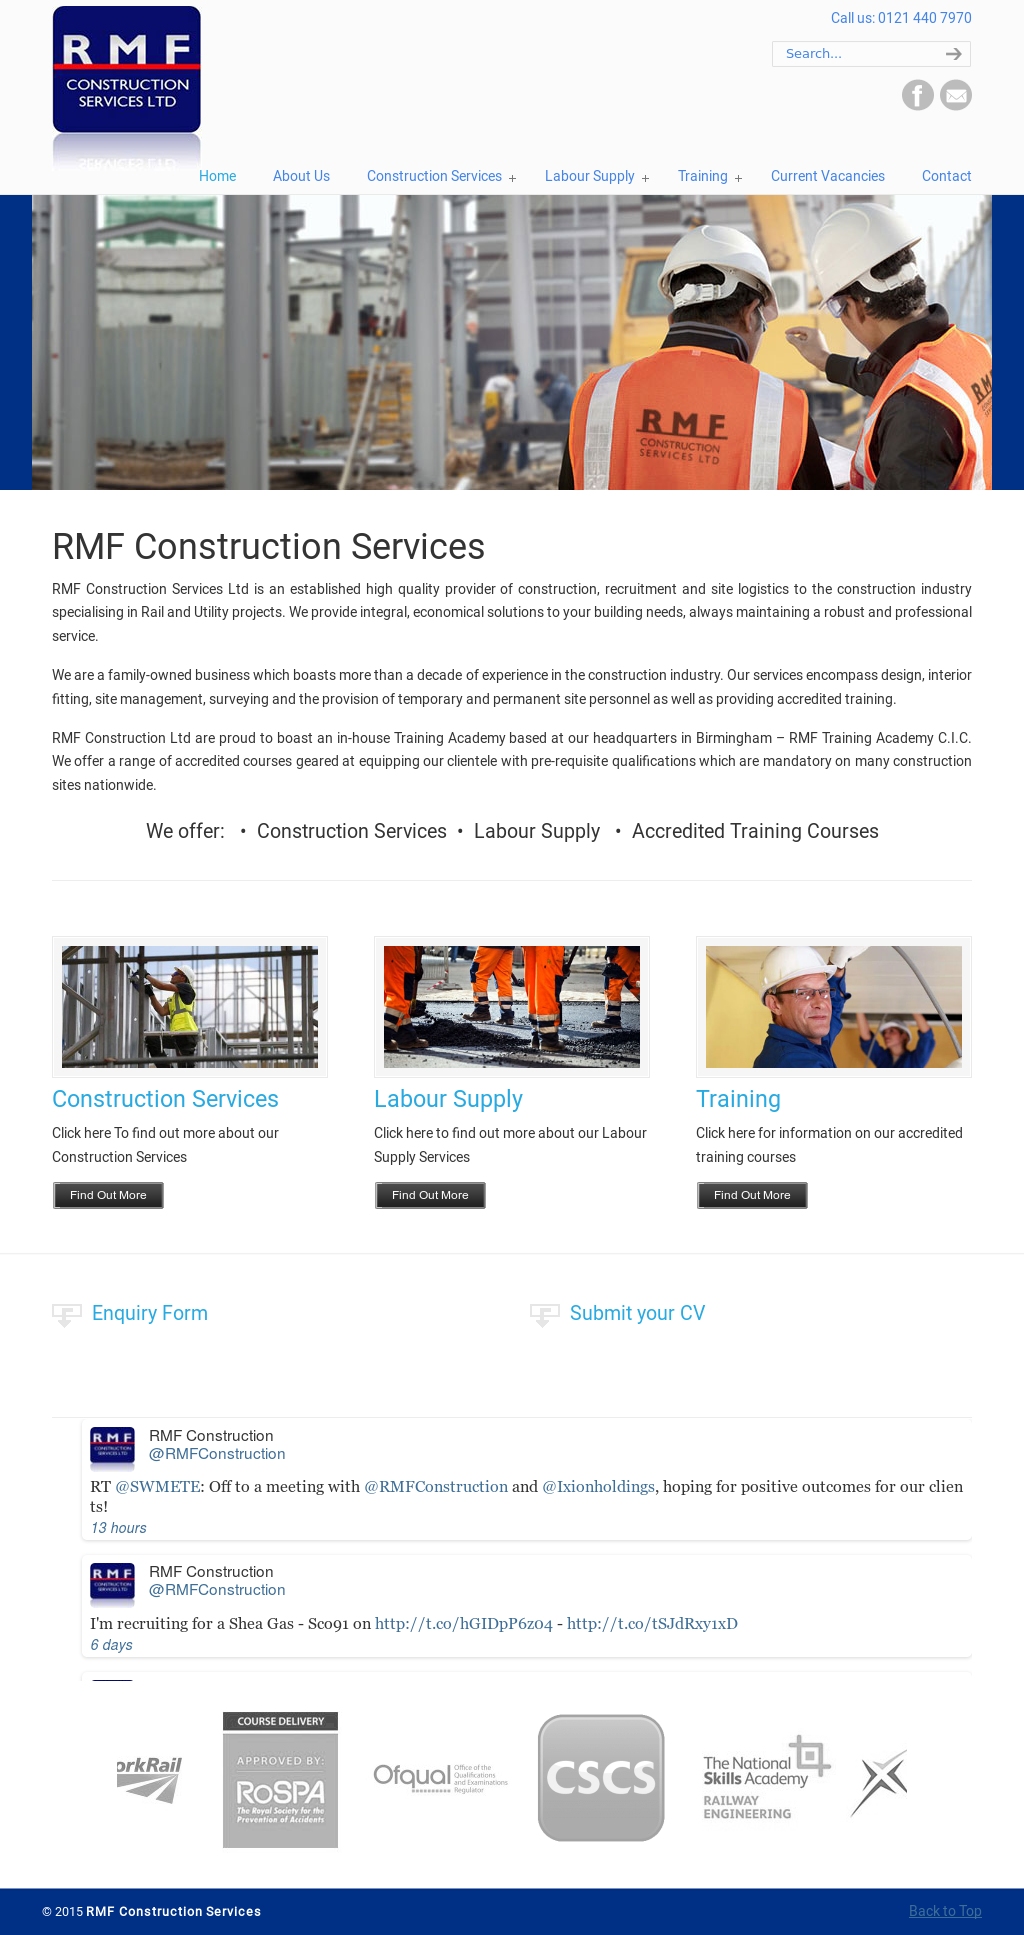 Rmf Construction Services Competitors, Revenue and Employees